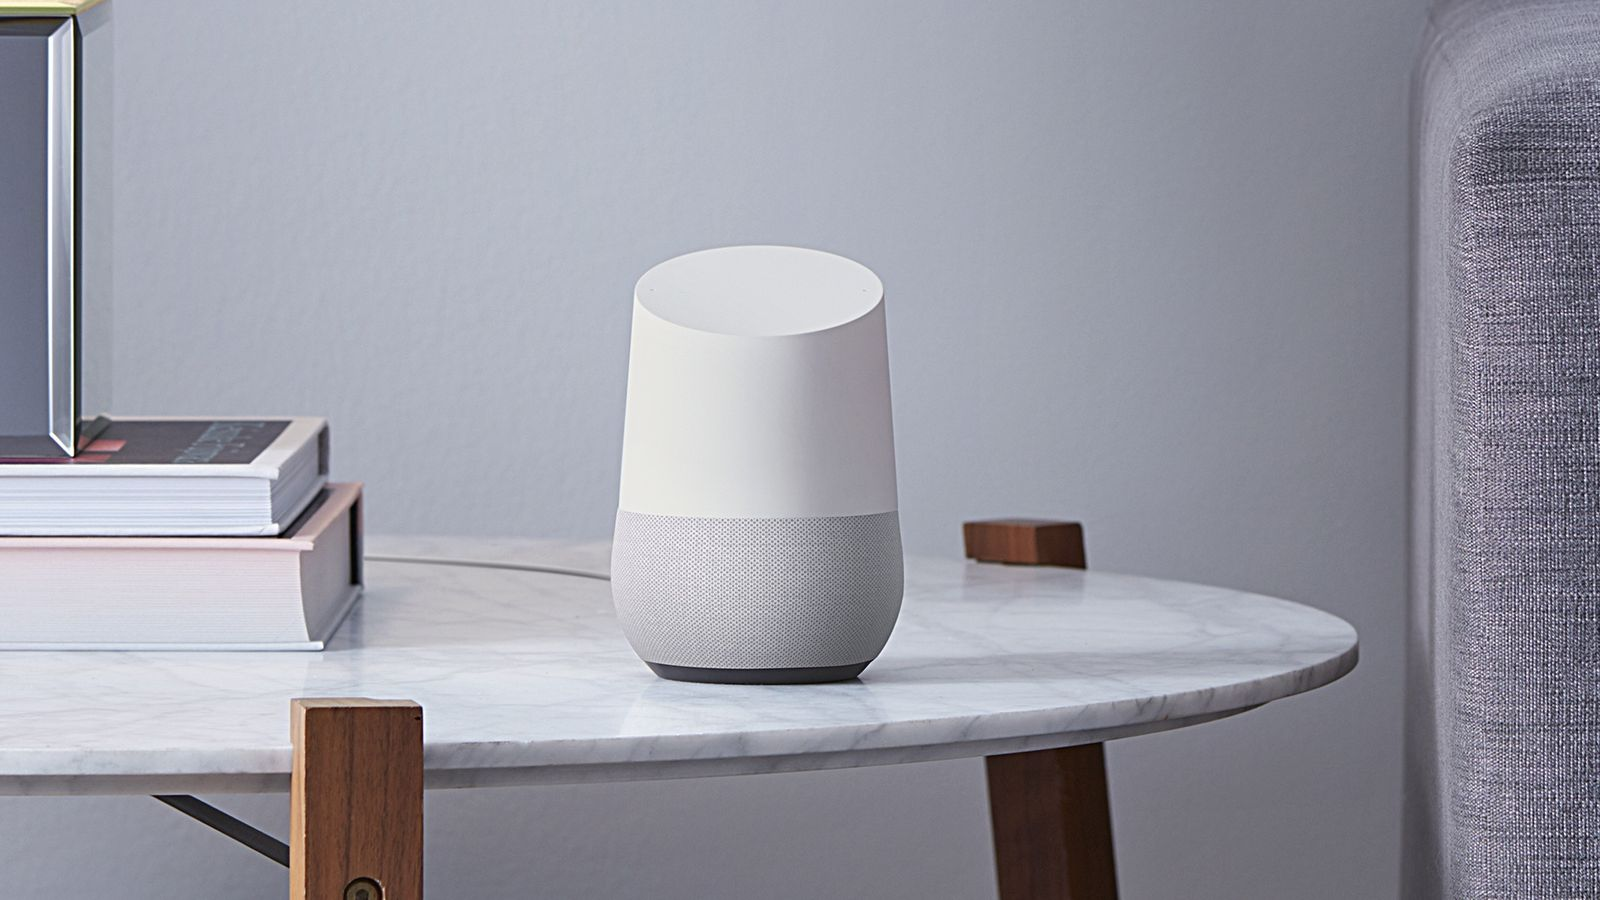 google home spanish speaking